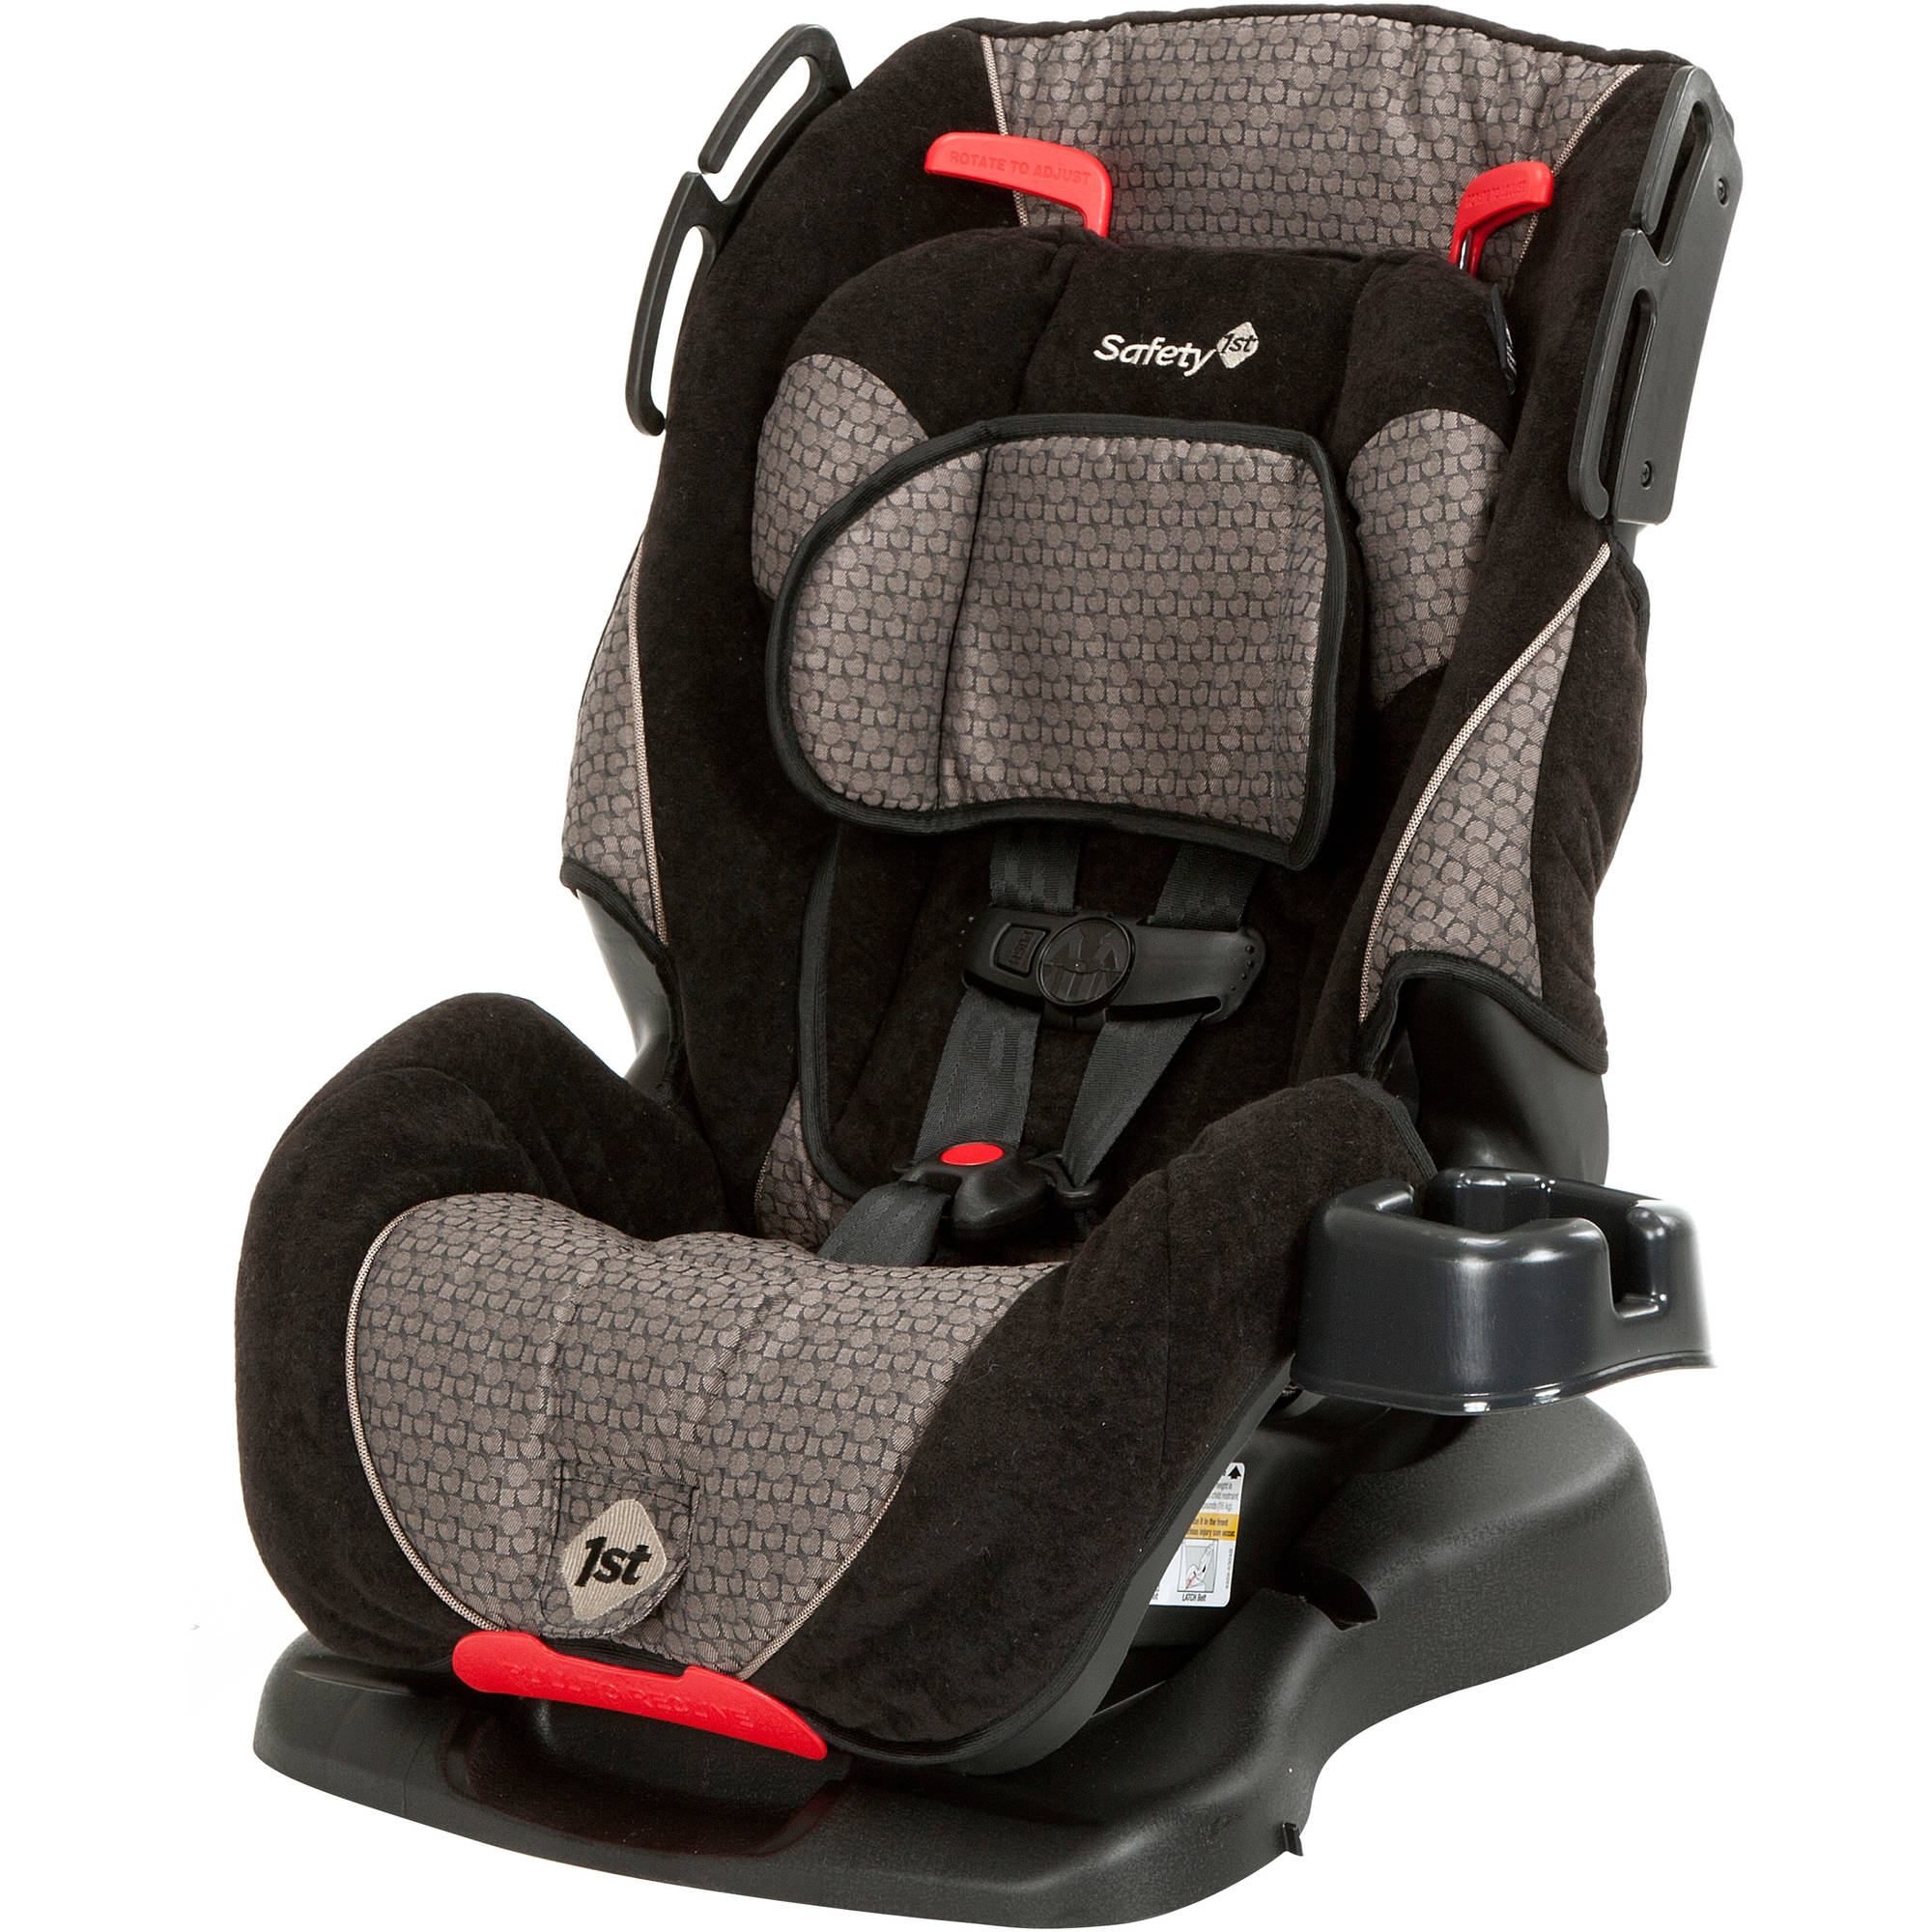 Car Seat Chair Safety 1st Guide 65 Sport Convertible Car Seat Walmart